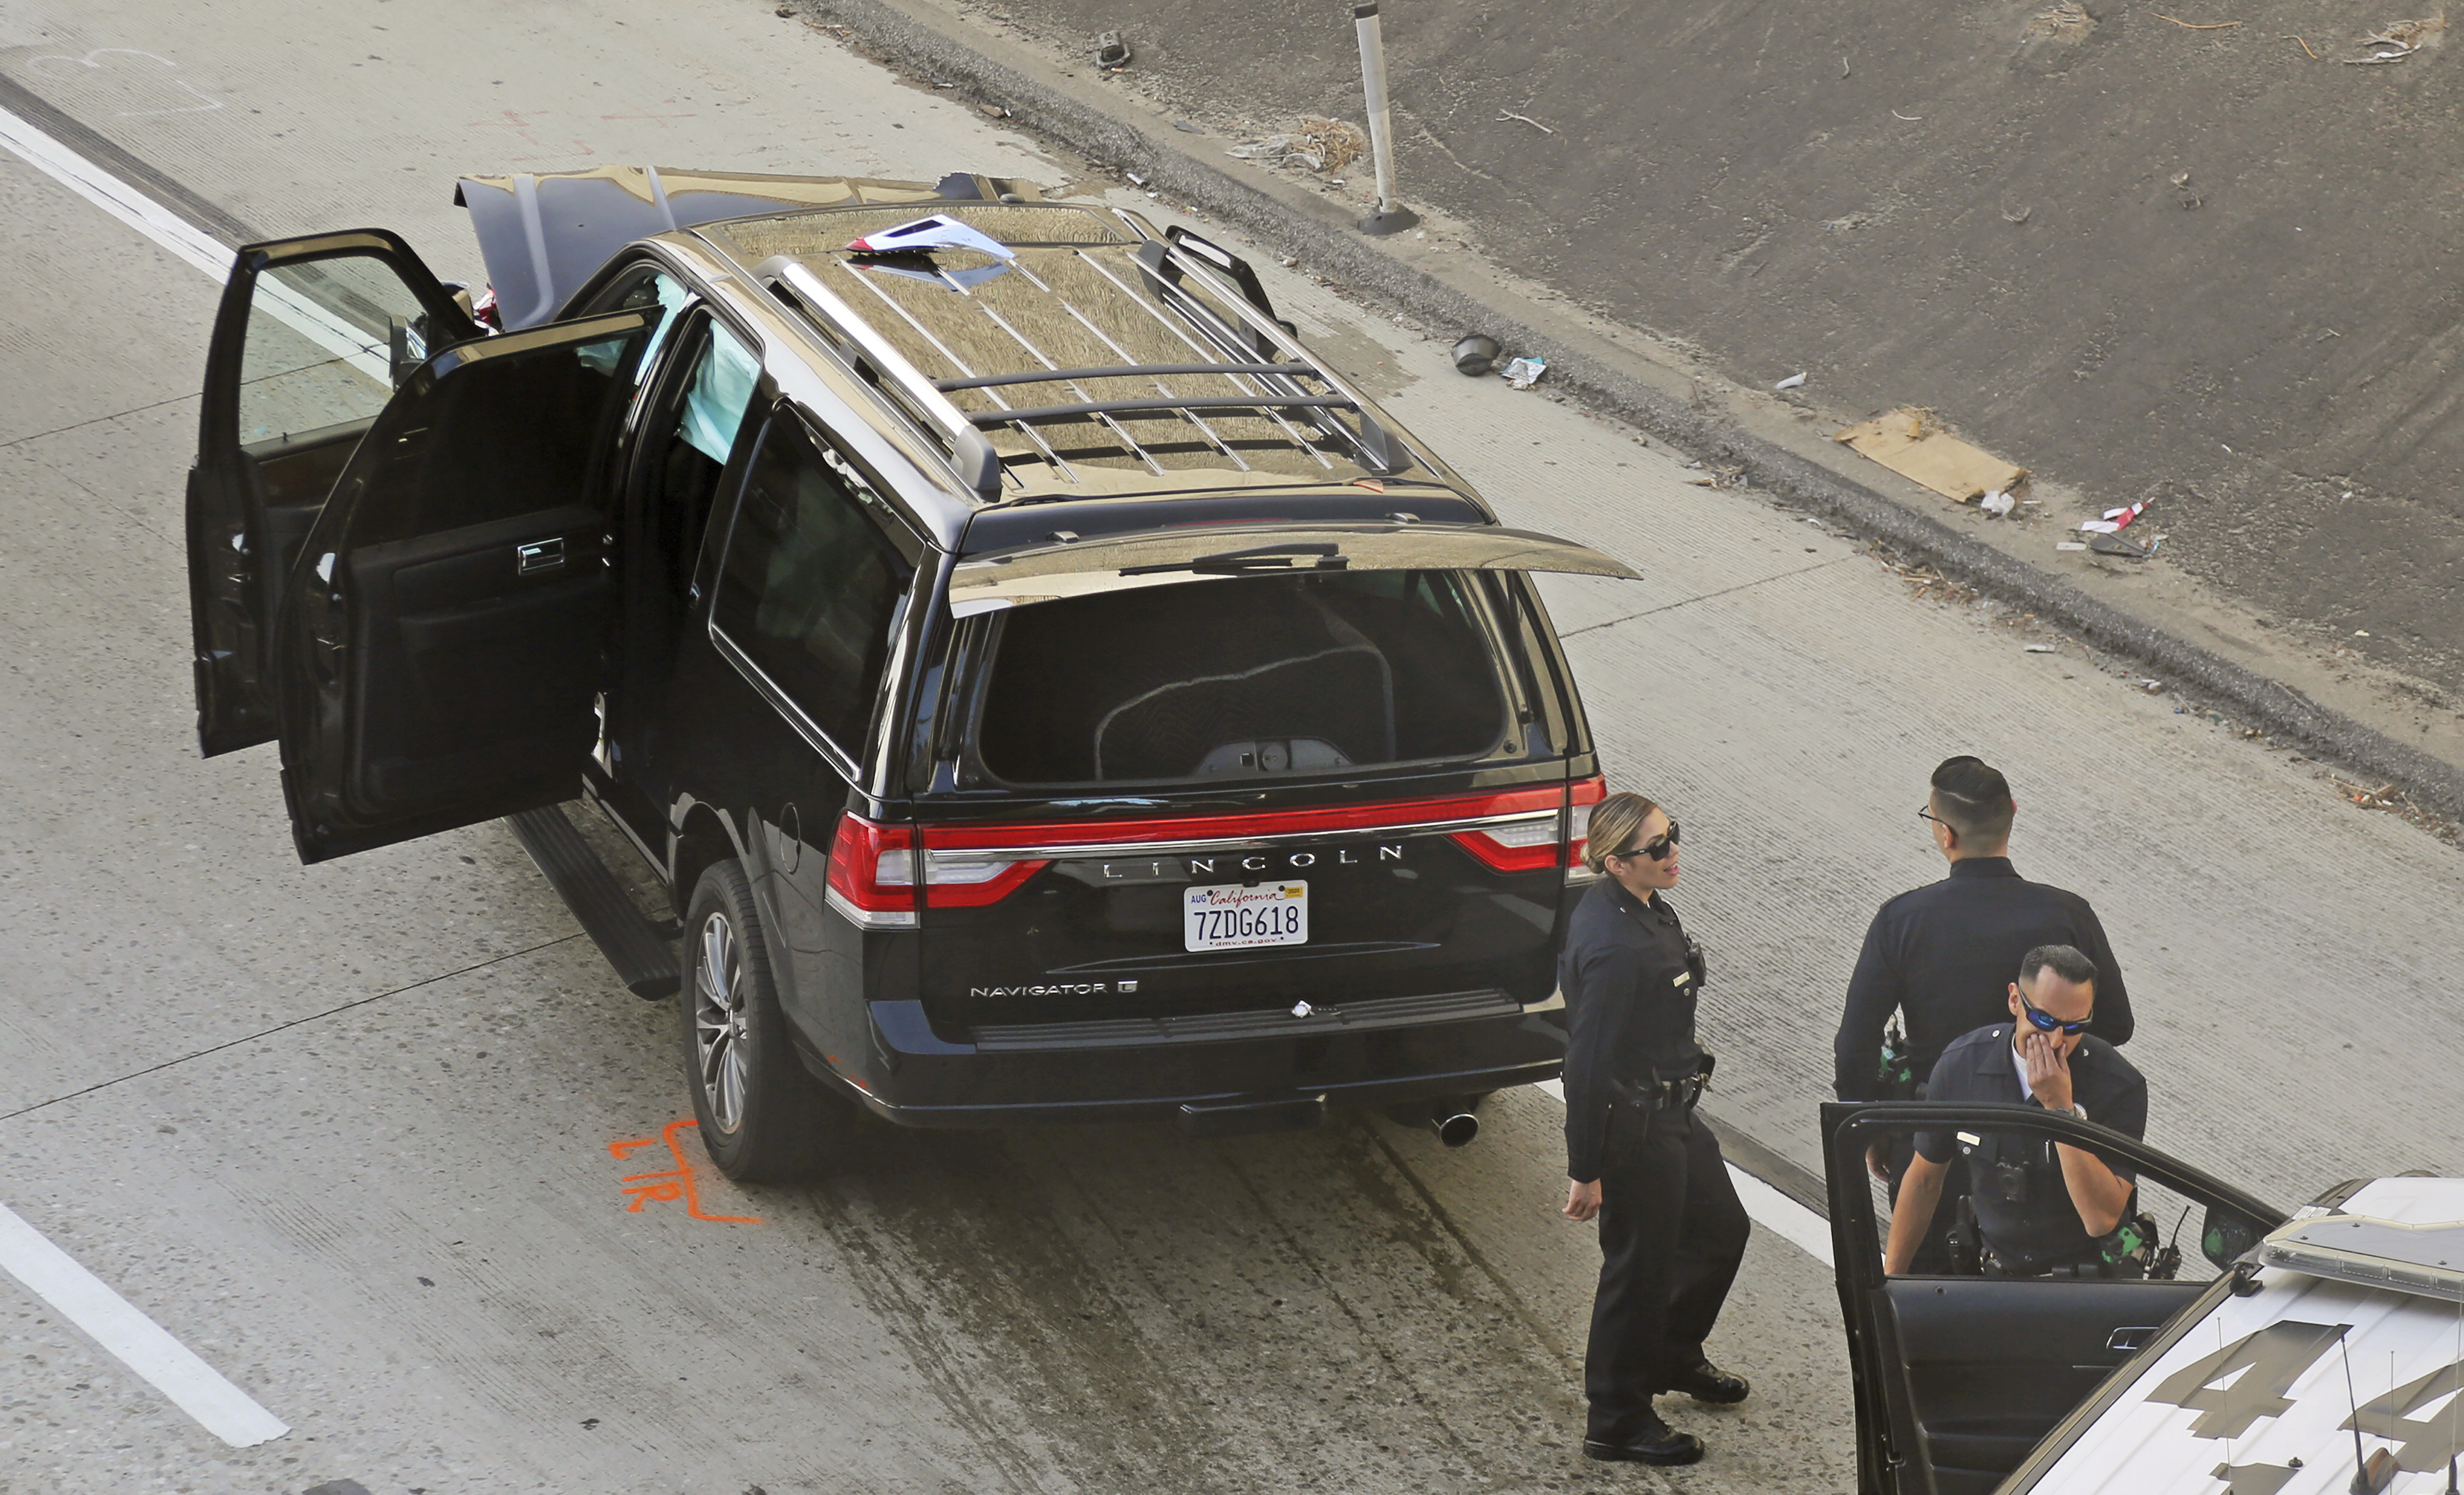 Los Angeles police officers stand after a pursuit of a stolen hearse with with a casket and body inside on Interstate 110 in South Los Angeles on Feb. 27, 2020.